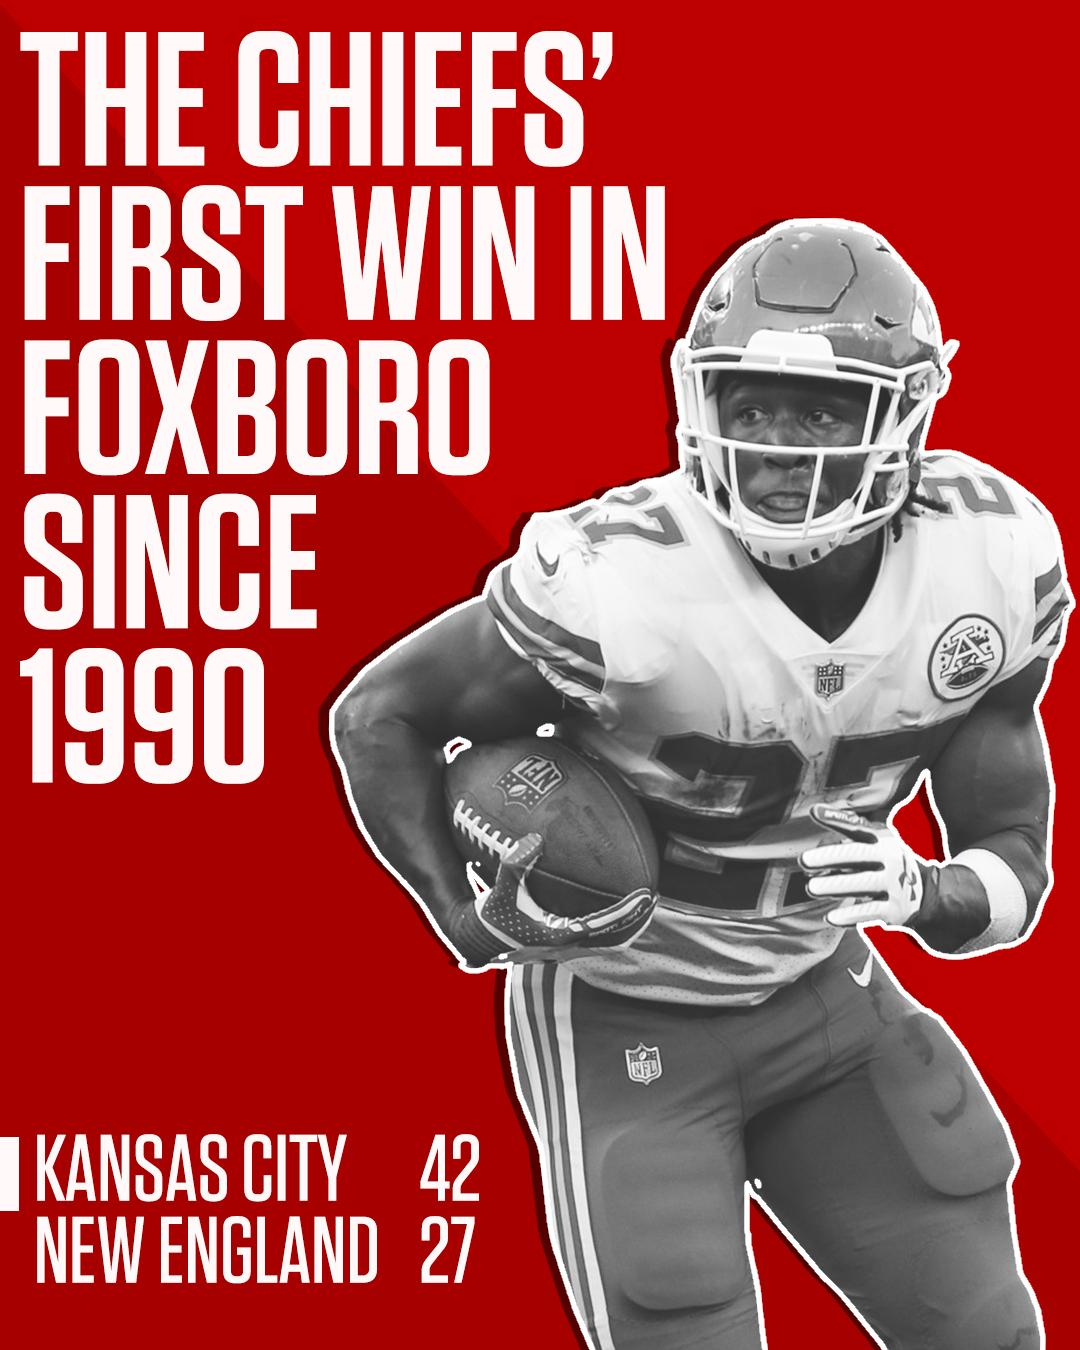 Not an easy place to win, but Kansas City got it done. https://t.co/NDcKftFhEm